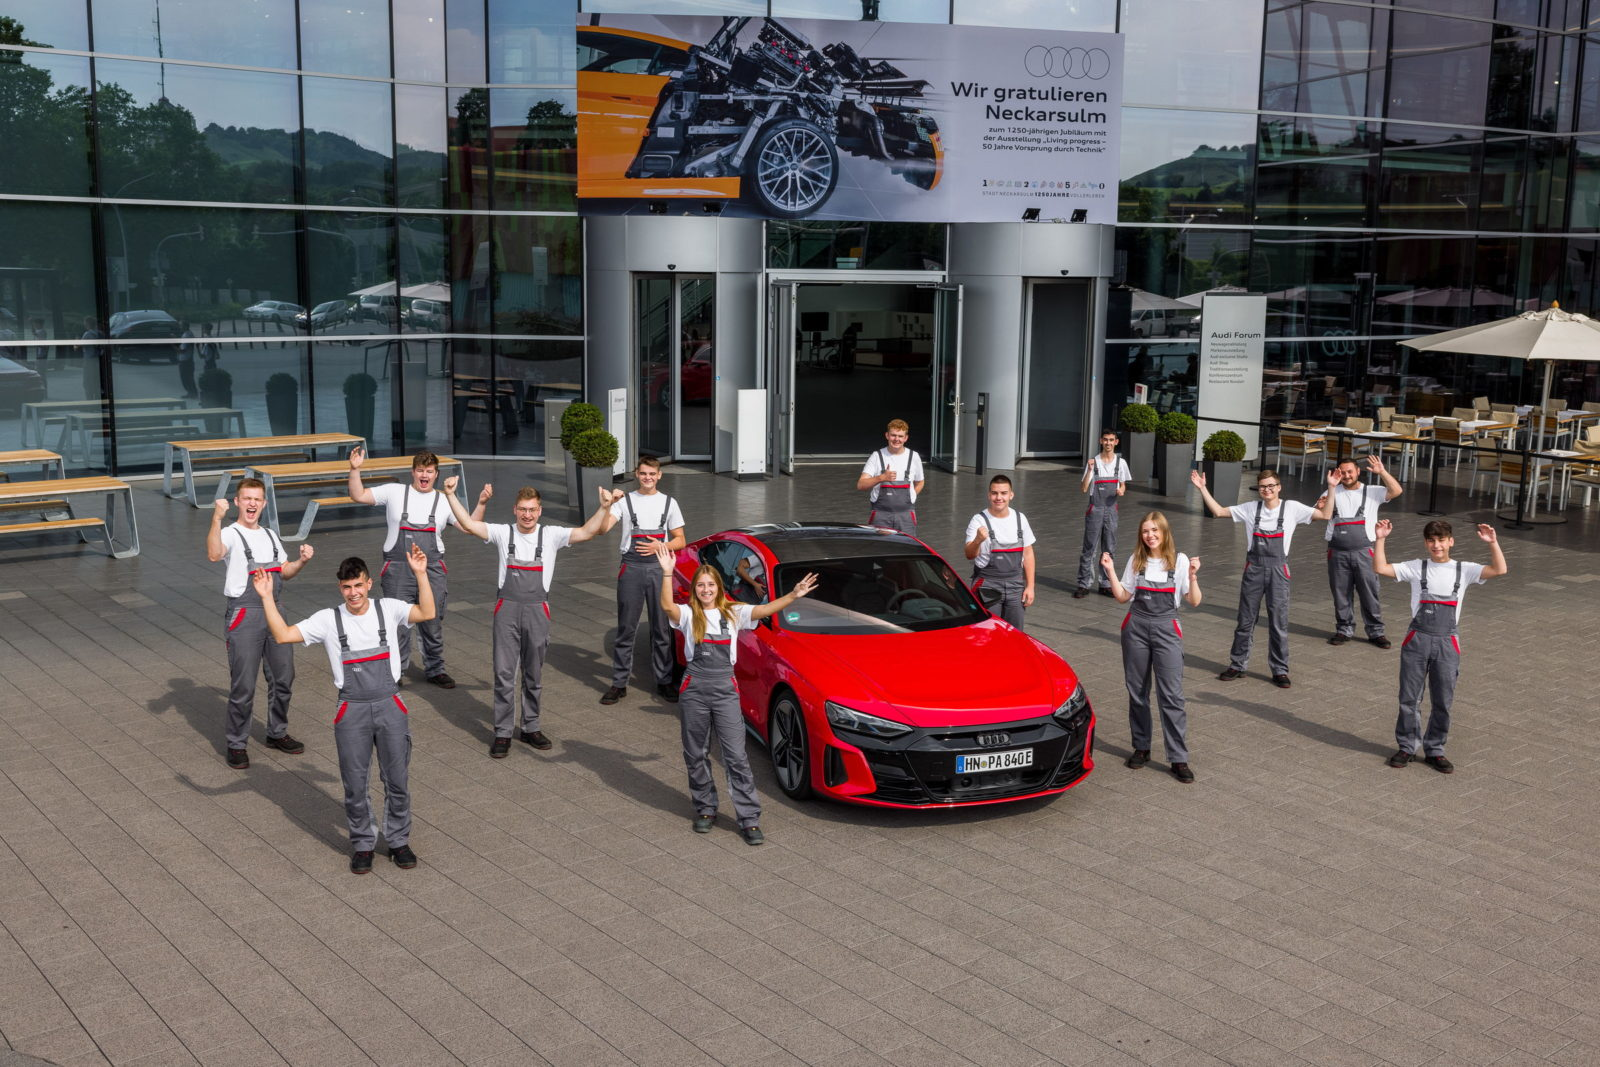 audi-provides-training-for-700-students,-offers-full-time-job-on-completion